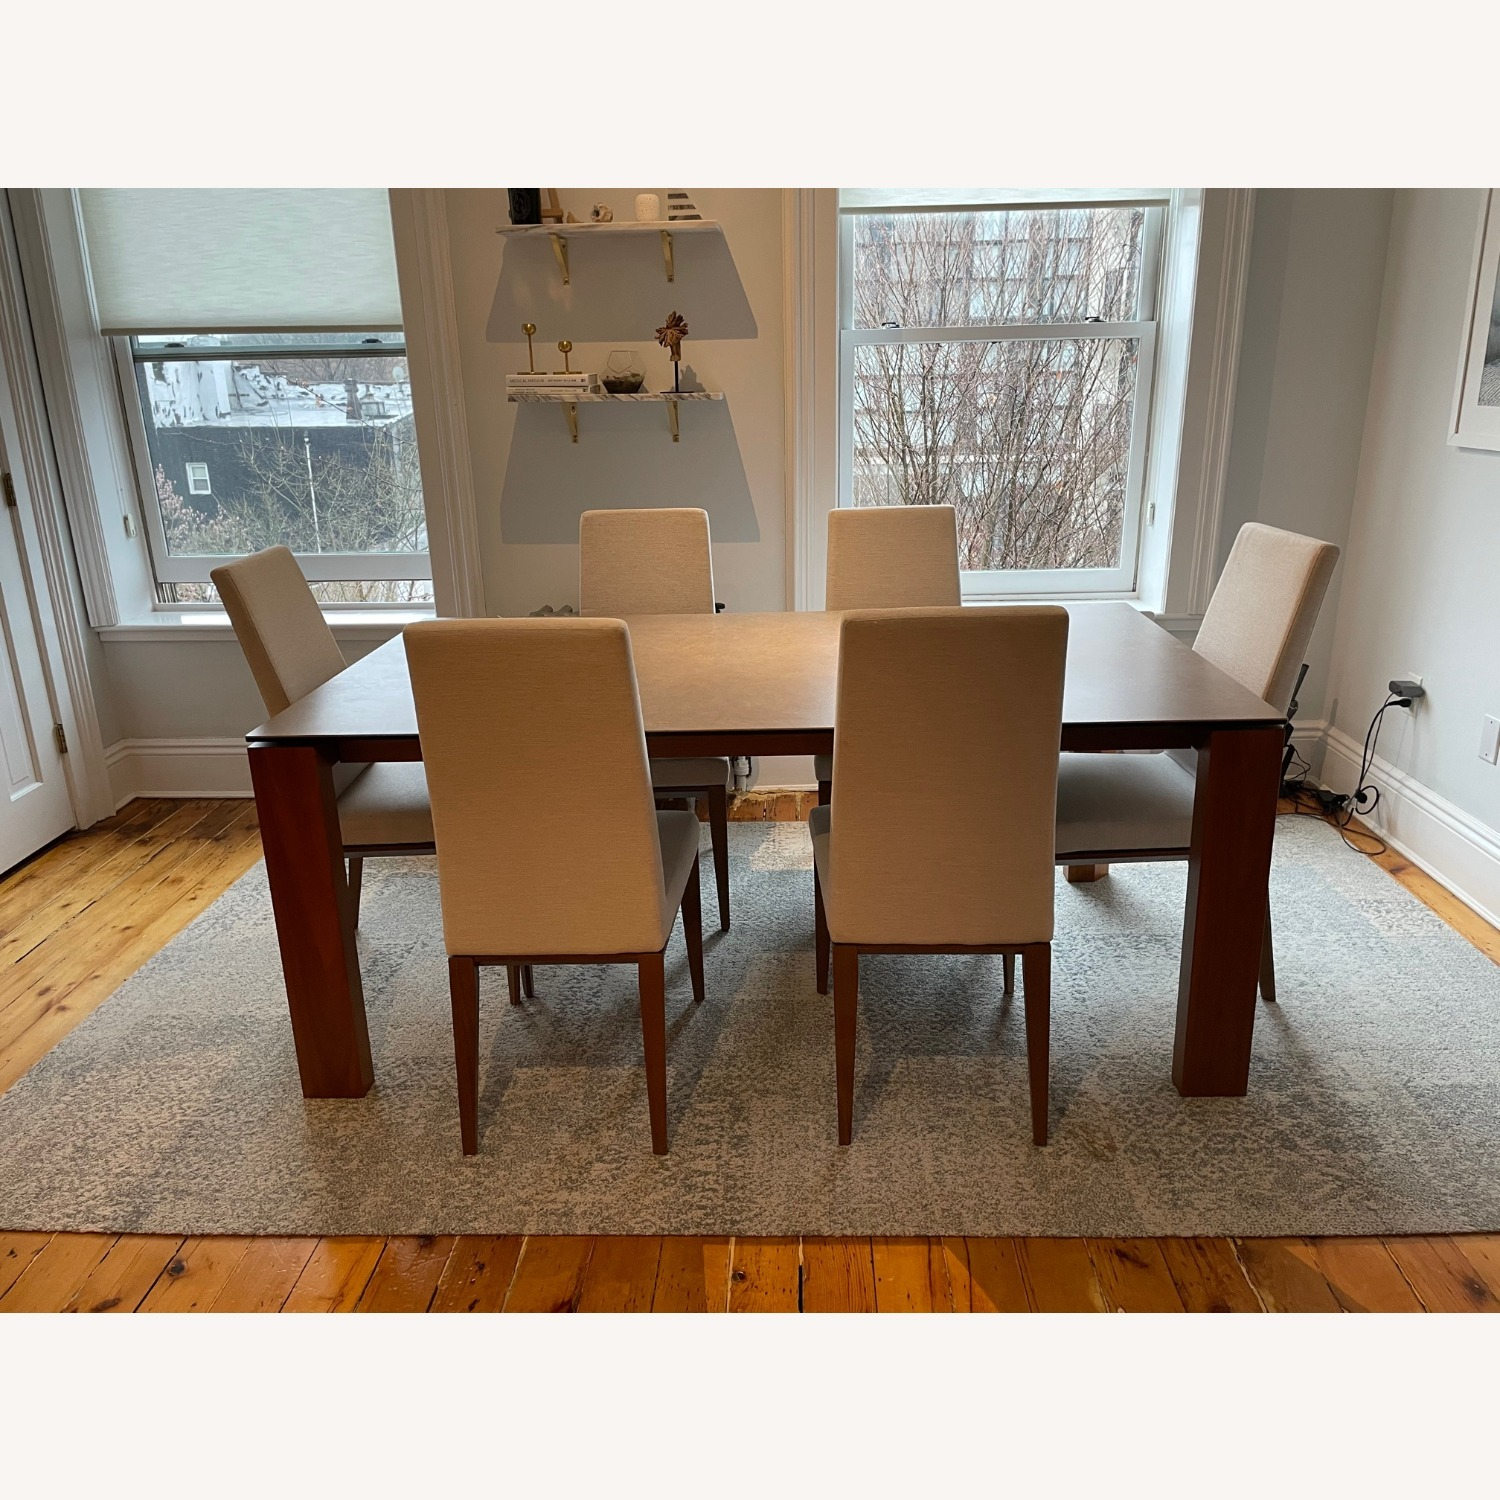 Calligaris Omnia Dining Room Table with Extension - image-1